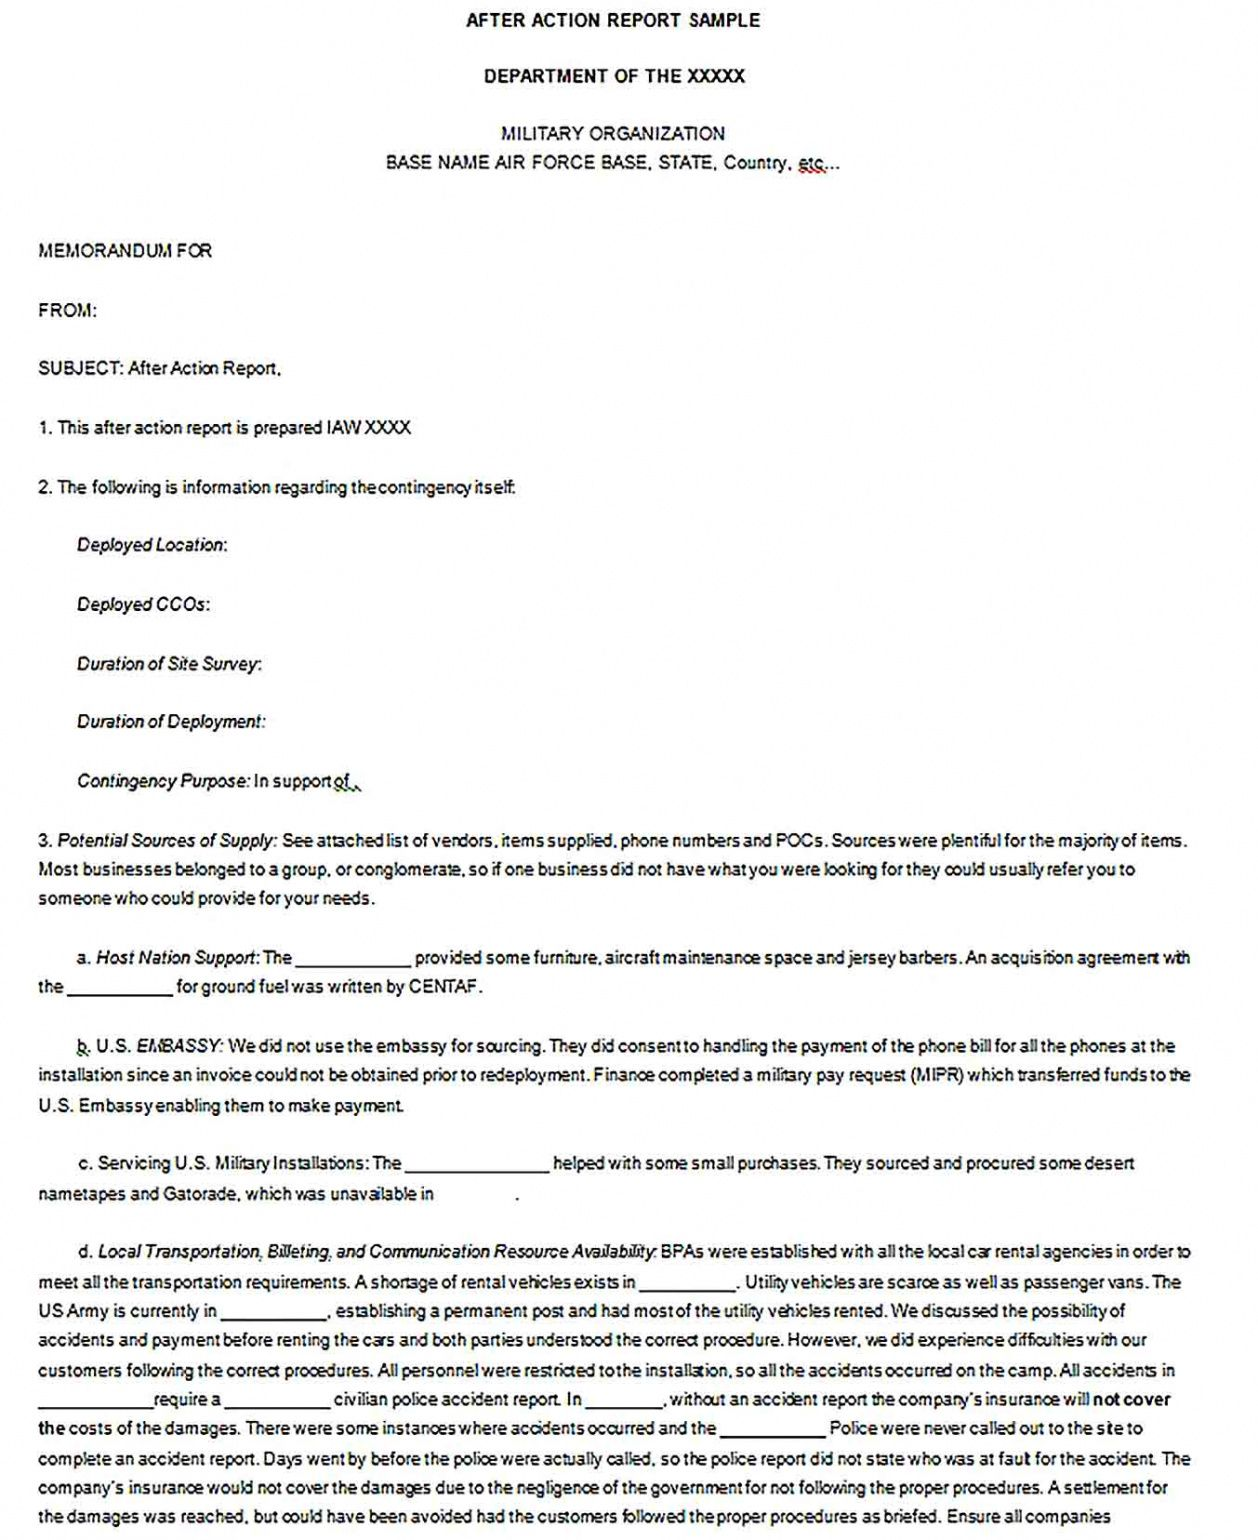 police report template police after action report template excel